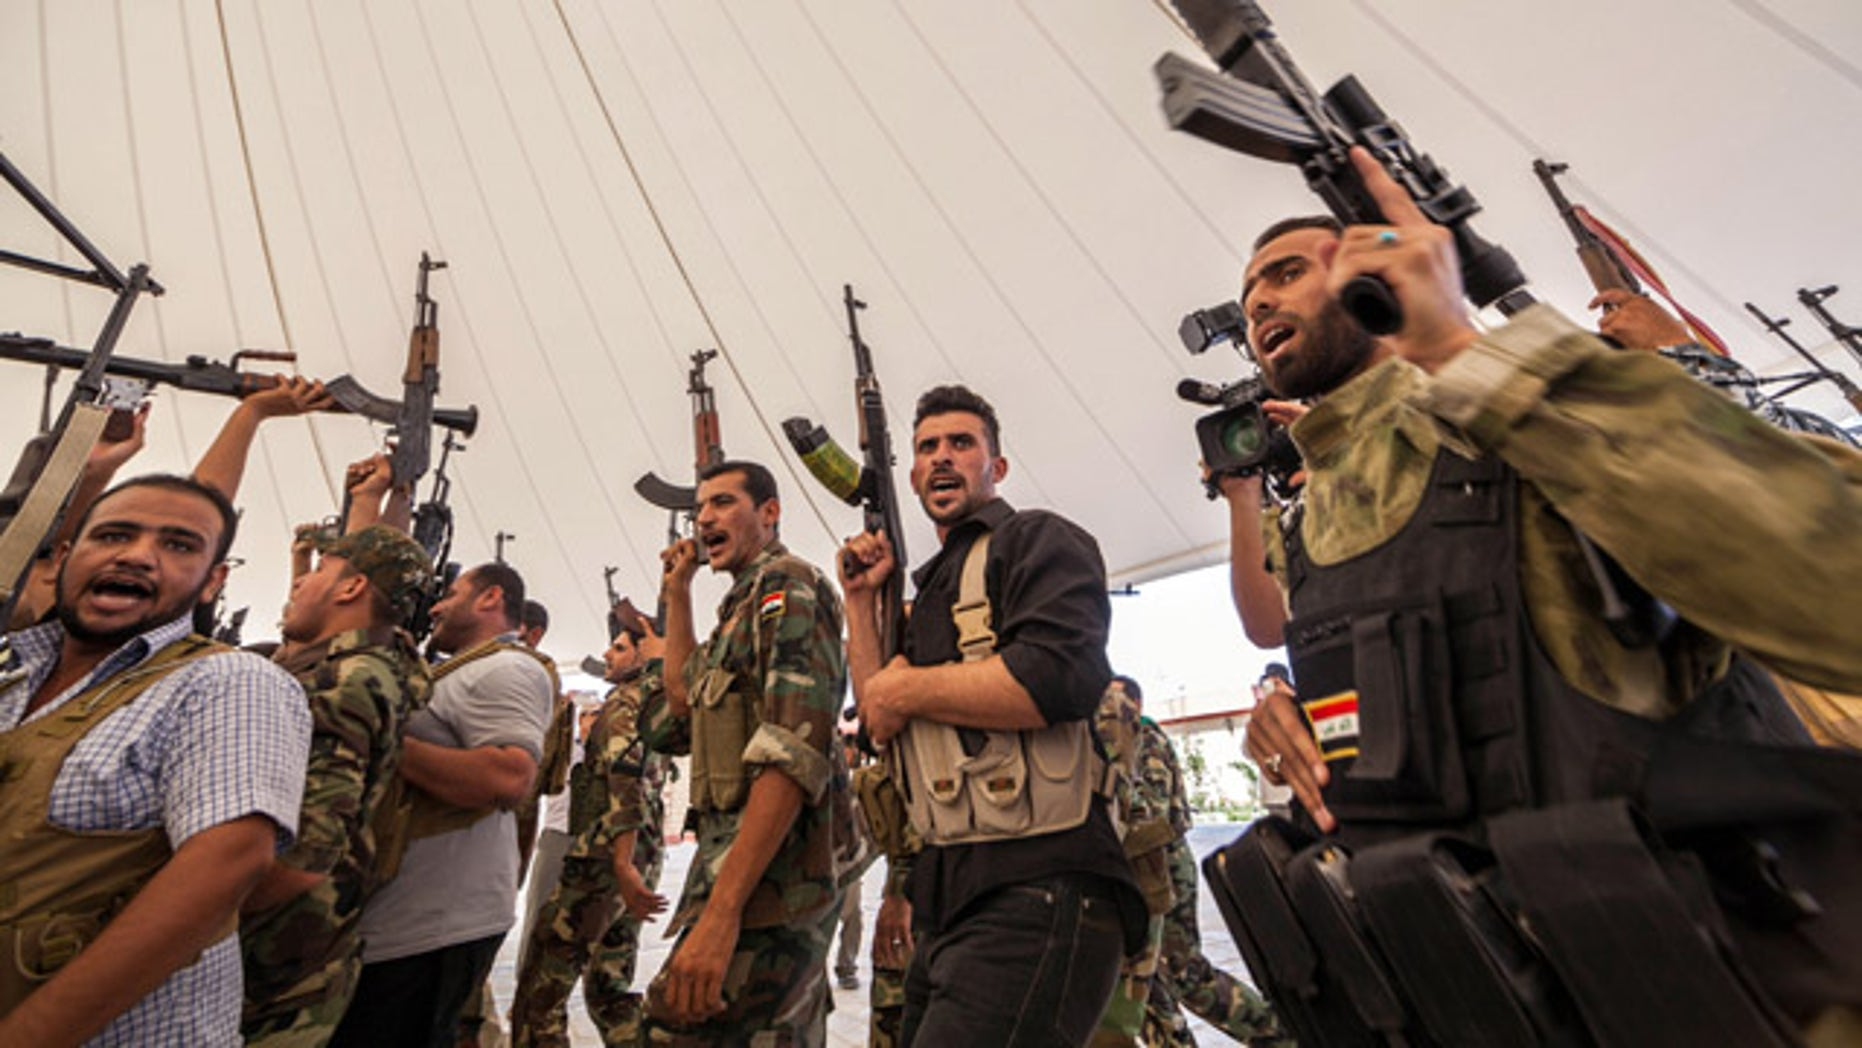 June 25, 2014: An Iraqi volunteer force chant slogans against the Al Qaeda-inspired Islamic State of Iraq and the Levant during training in the Shiite holy city of Karbala, 50 miles south of Baghdad. (AP Photo/Ahmed al-Husseini)